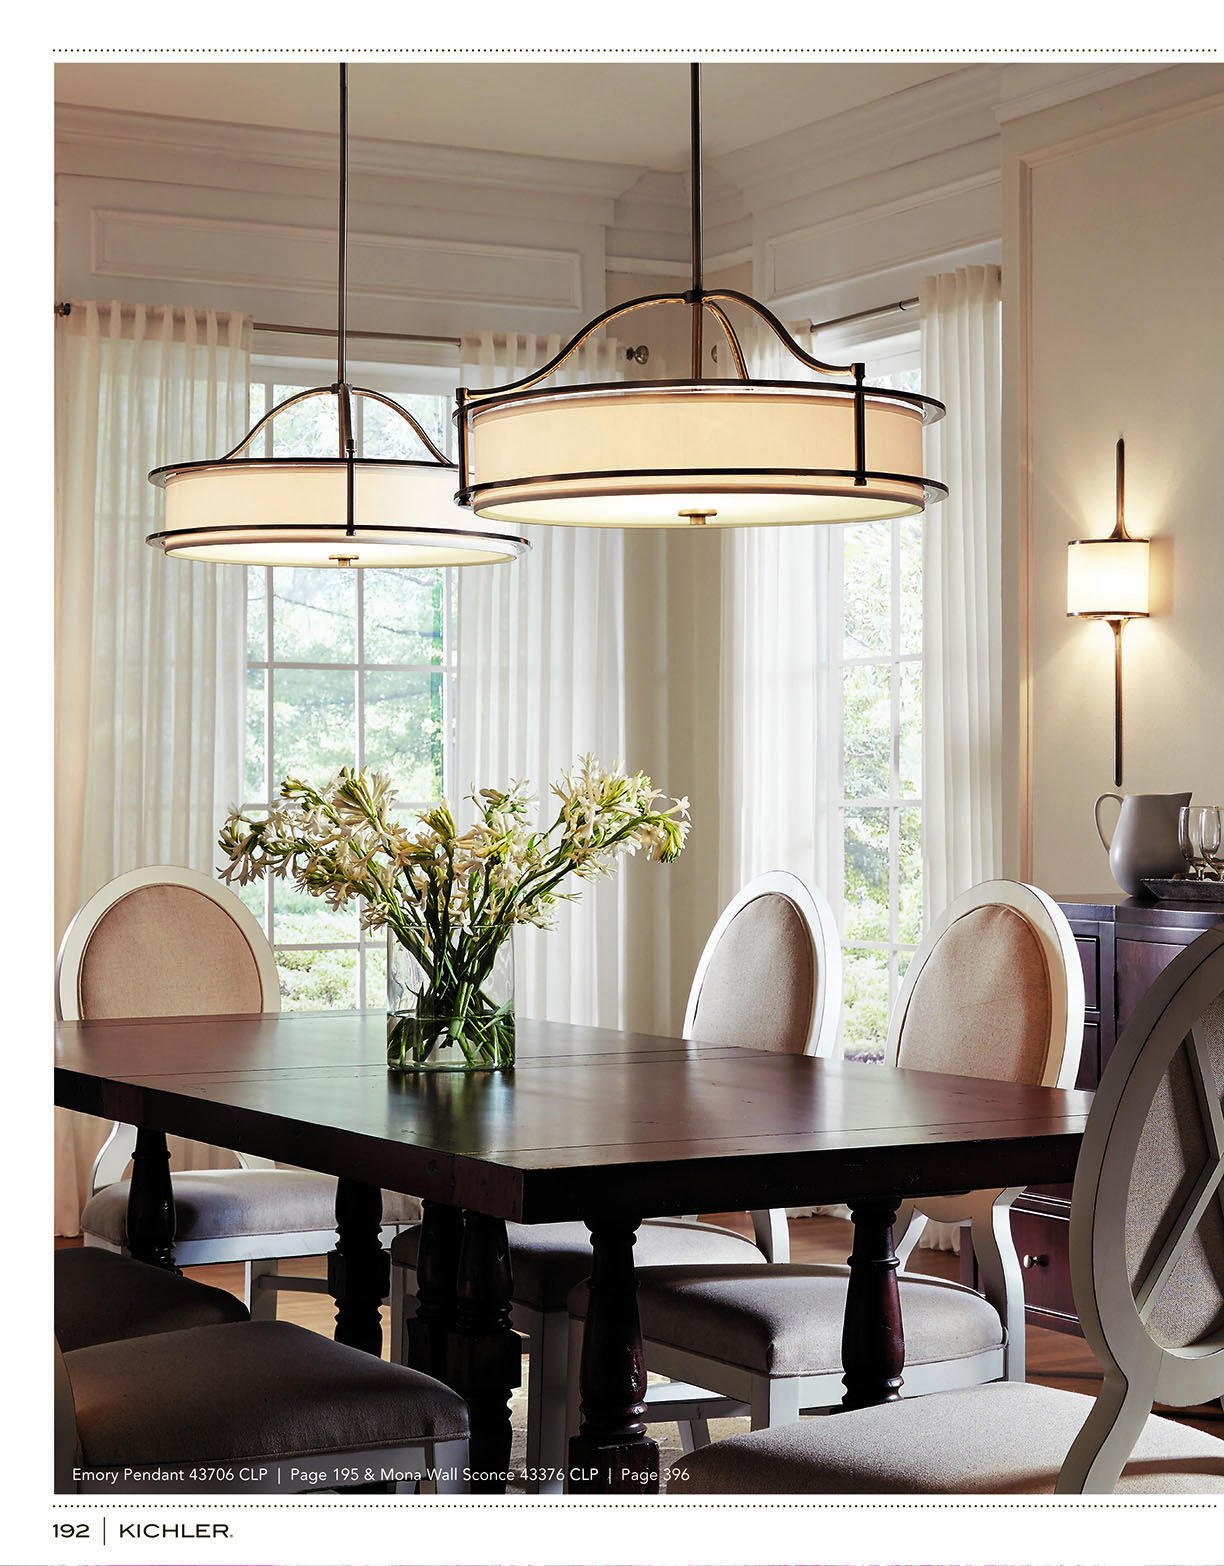 Kichler K116 Source Book Dining Room Lighting Dining Room